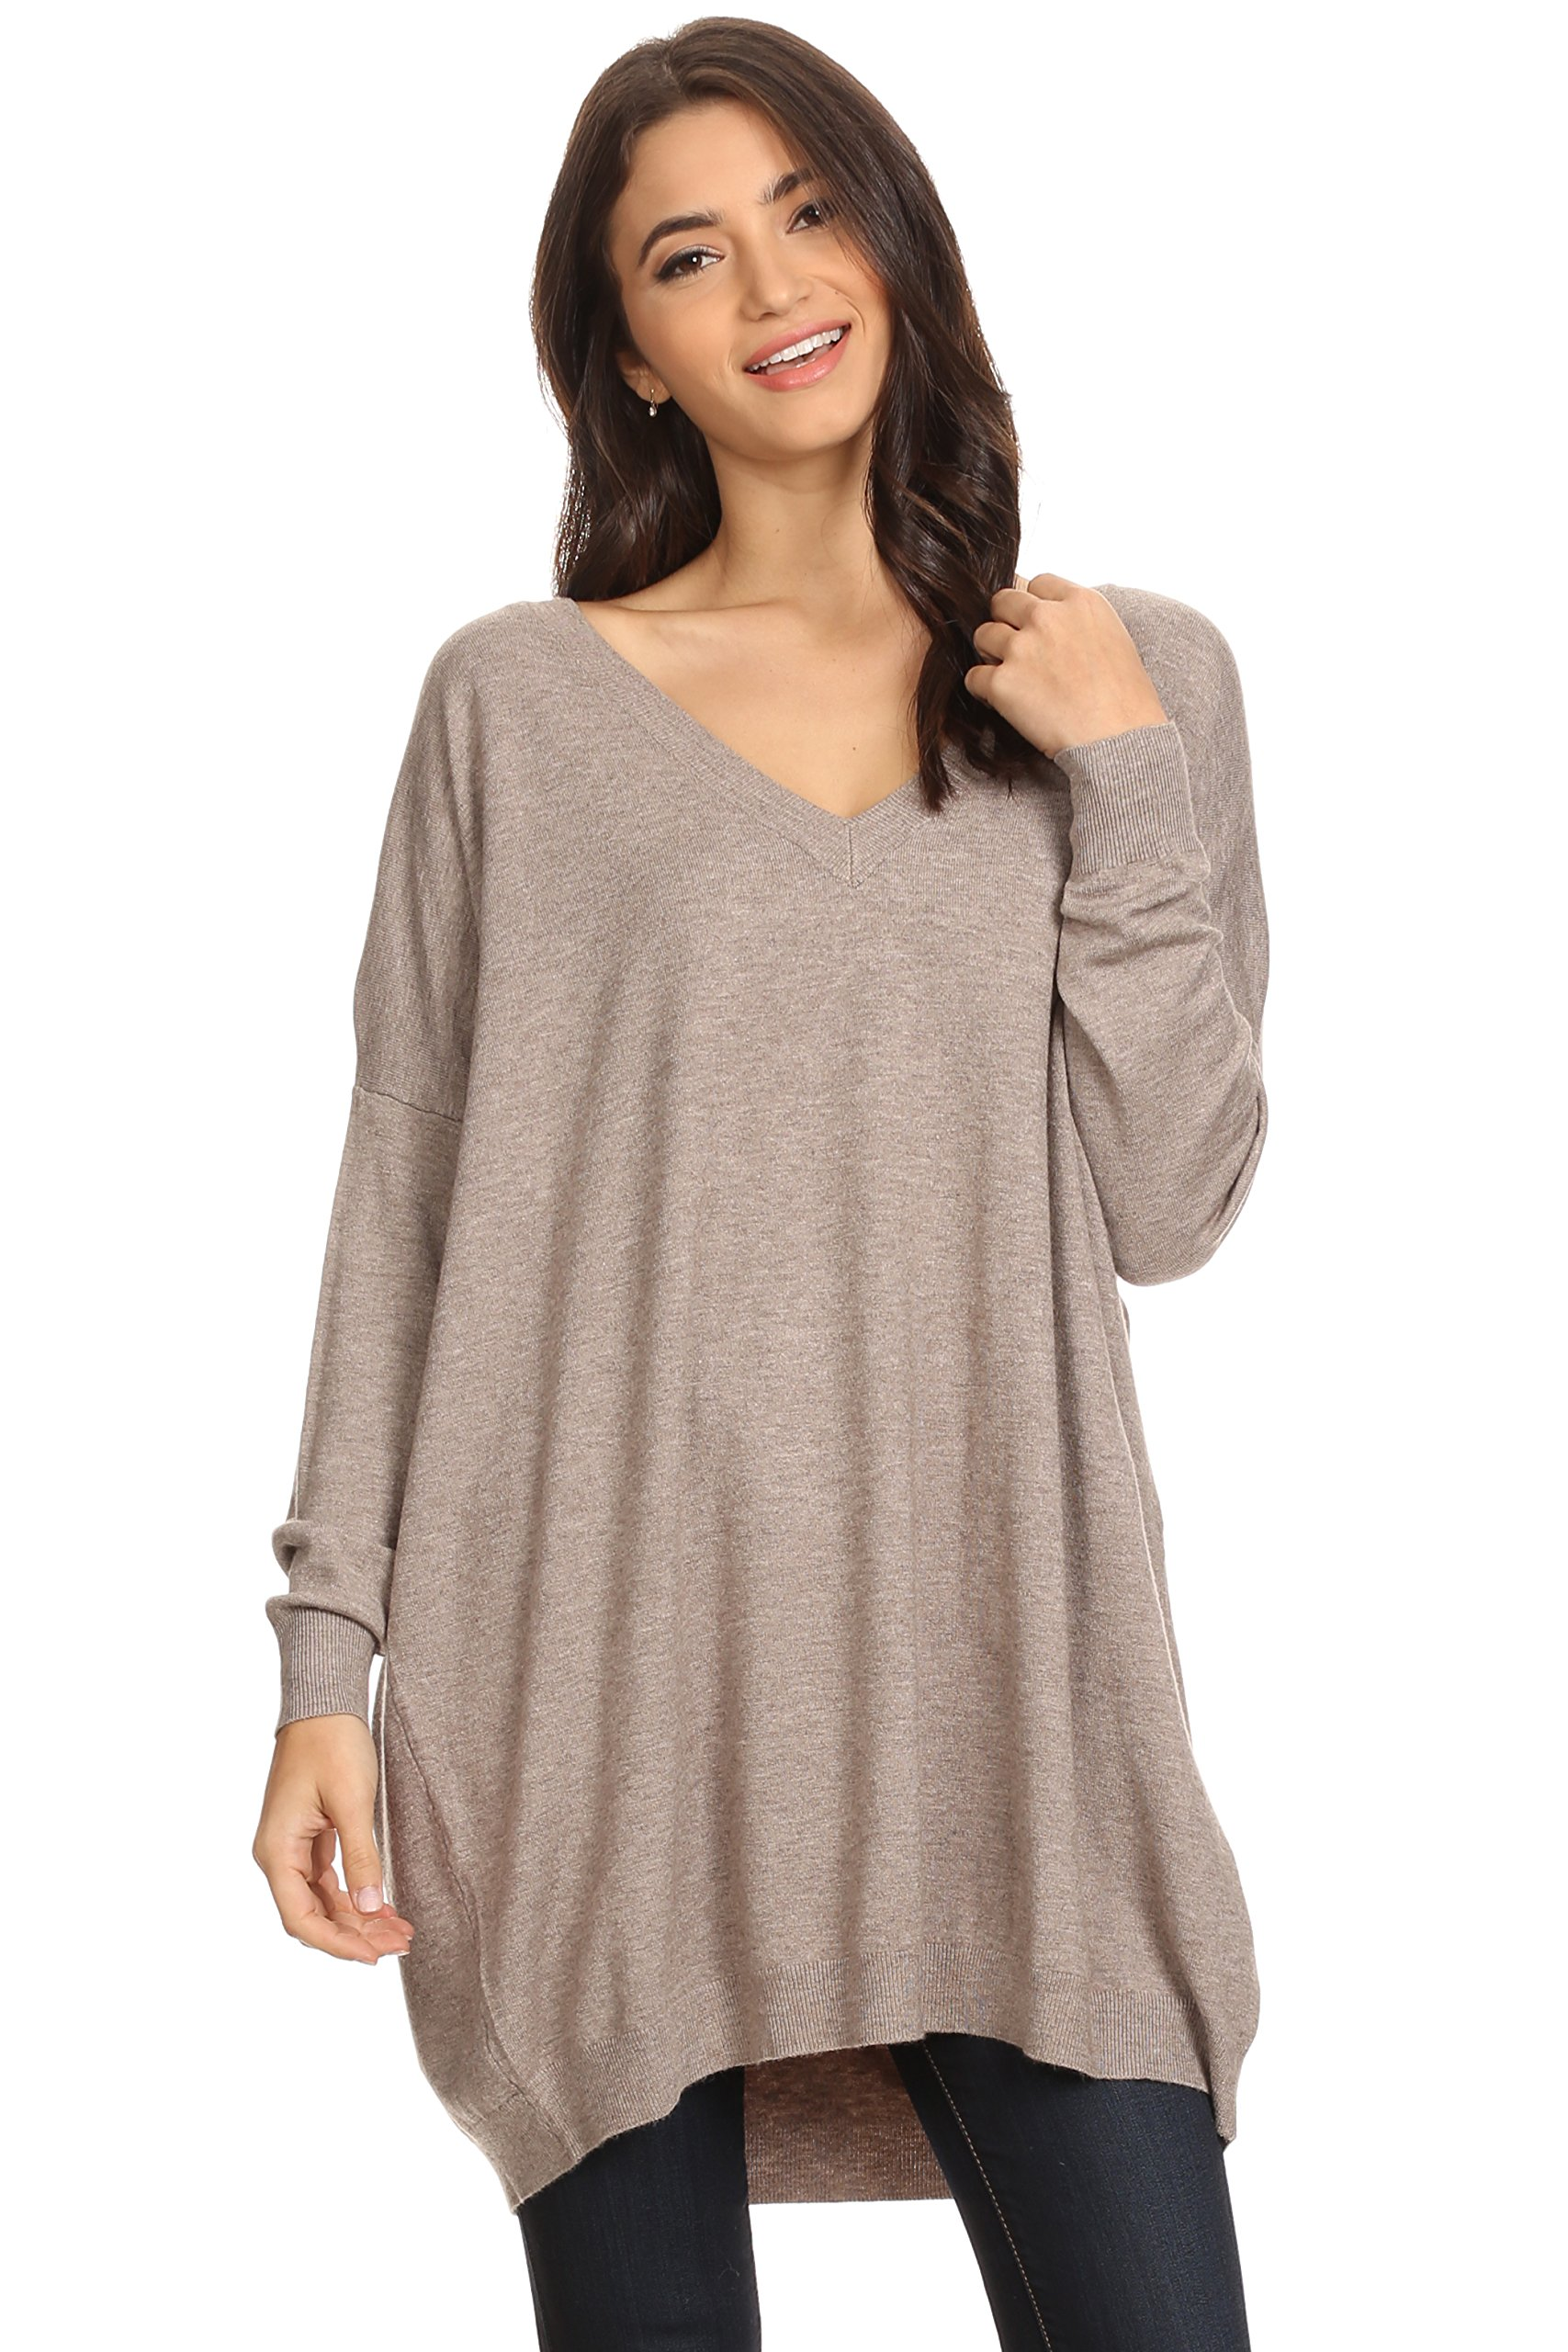 Alexander + David Womens Basic Oversized V-Neck Sweater Pullover Tunic (Mocha, Medium/Large)